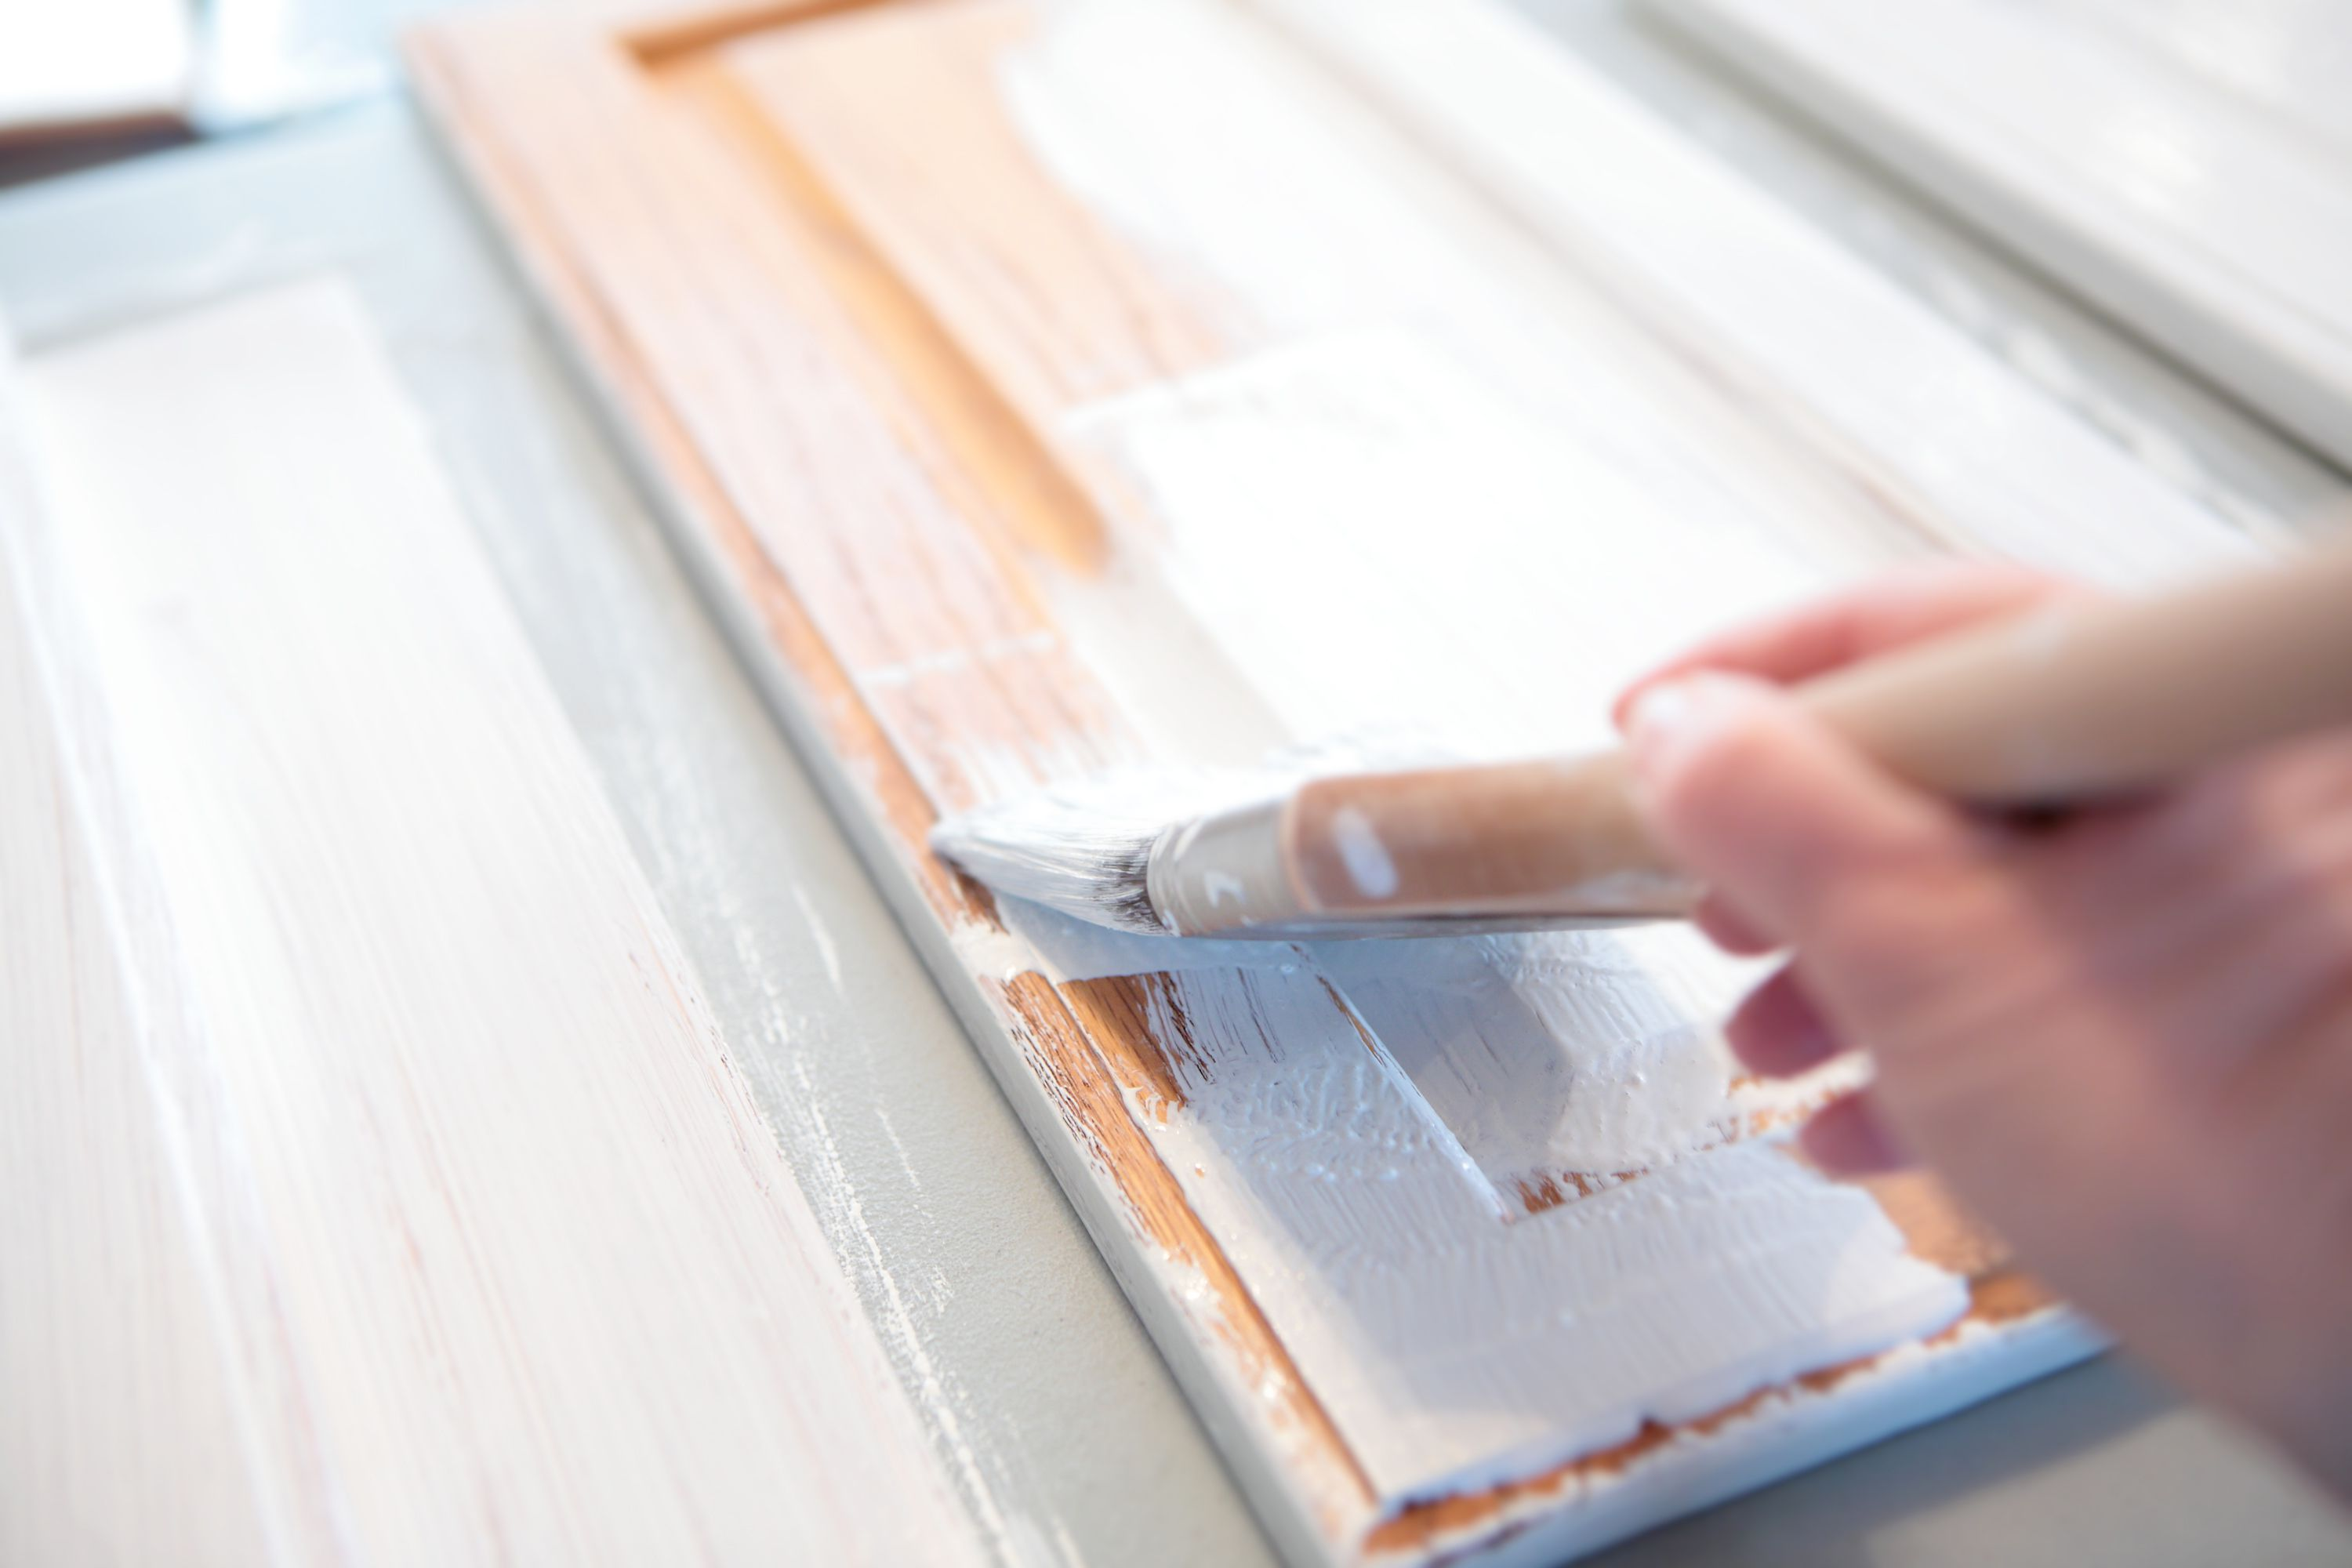 For An Affordable Kitchen Update Try Painting Your Cabinets